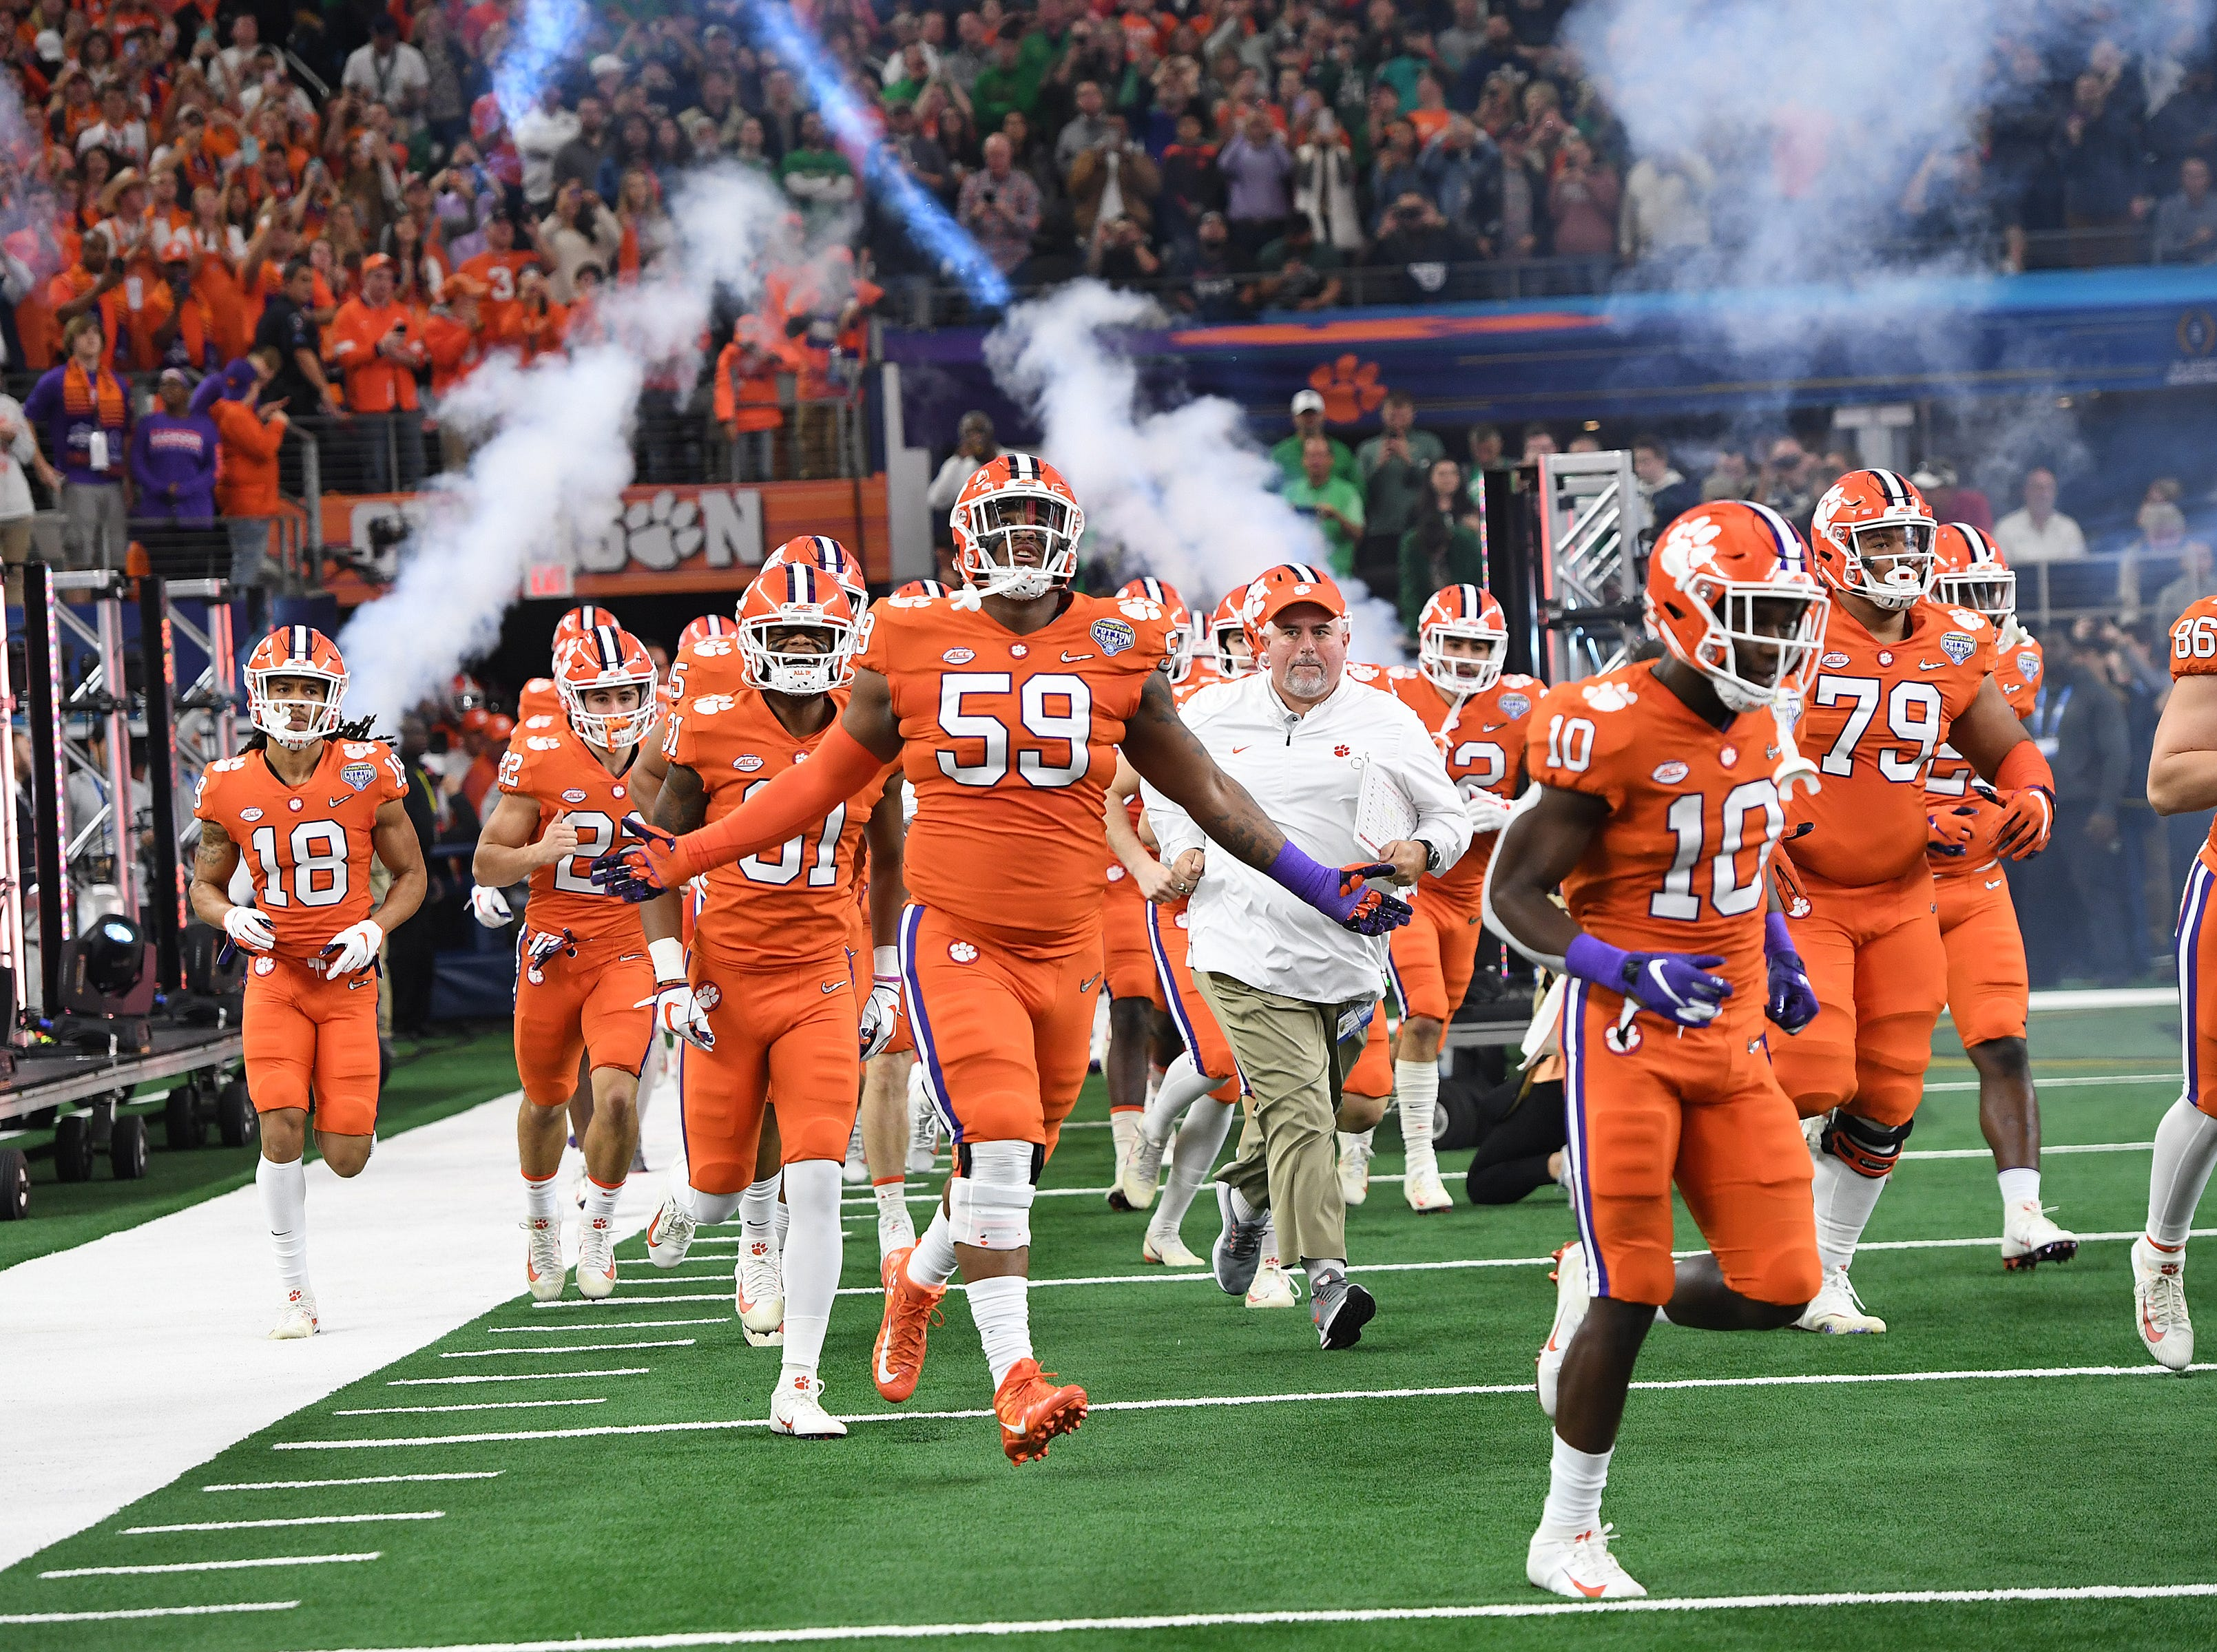 Clemson takes the field during pregame of the Goodyear Cotton Bowl at AT&T stadium in Arlington, TX Saturday, December 29, 2018.